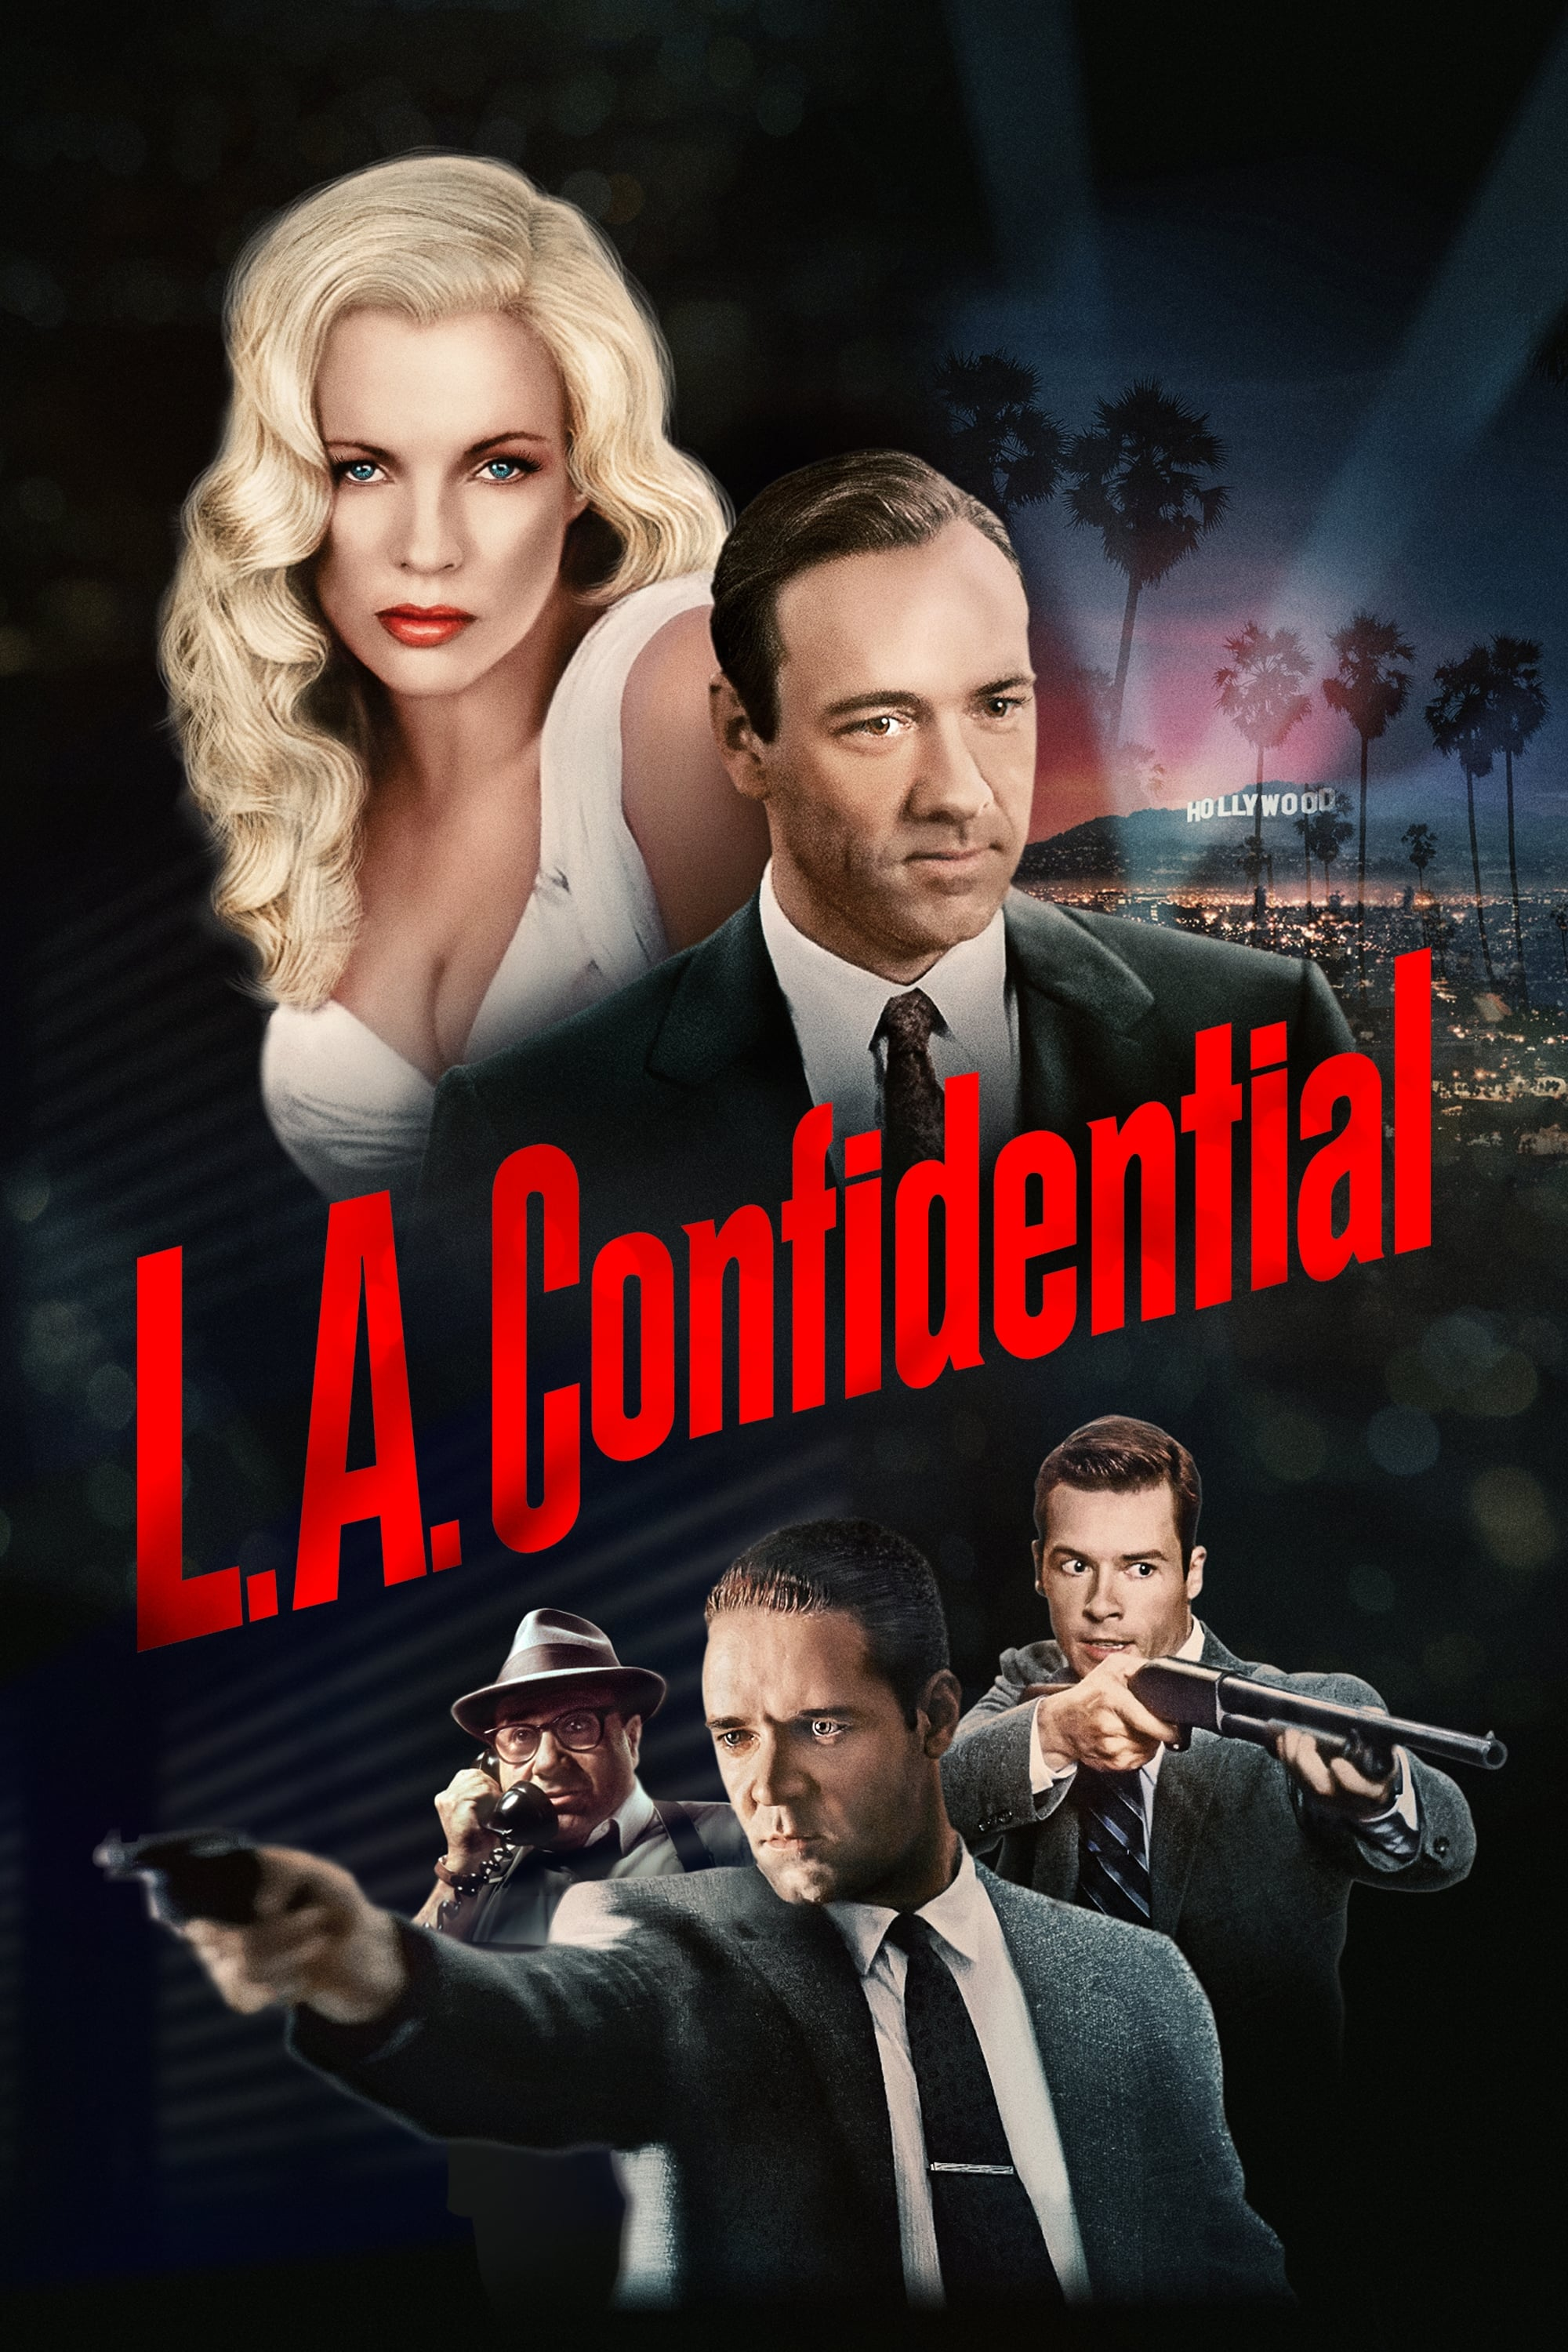 La confidential original poster